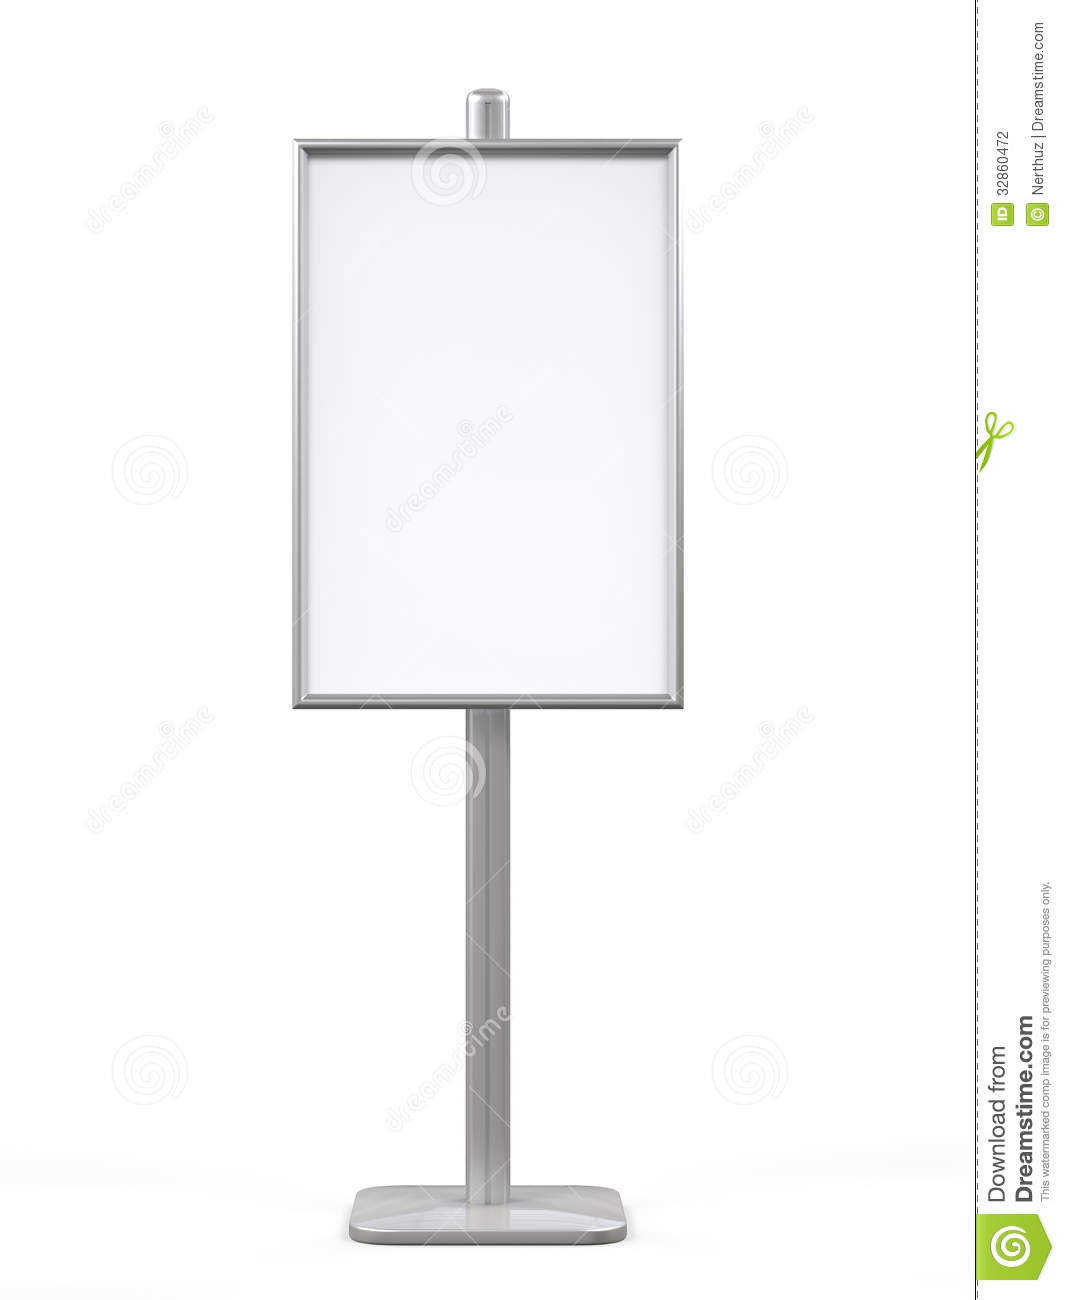 Exhibition Stand Advertising : White display advertising stand stock photography image